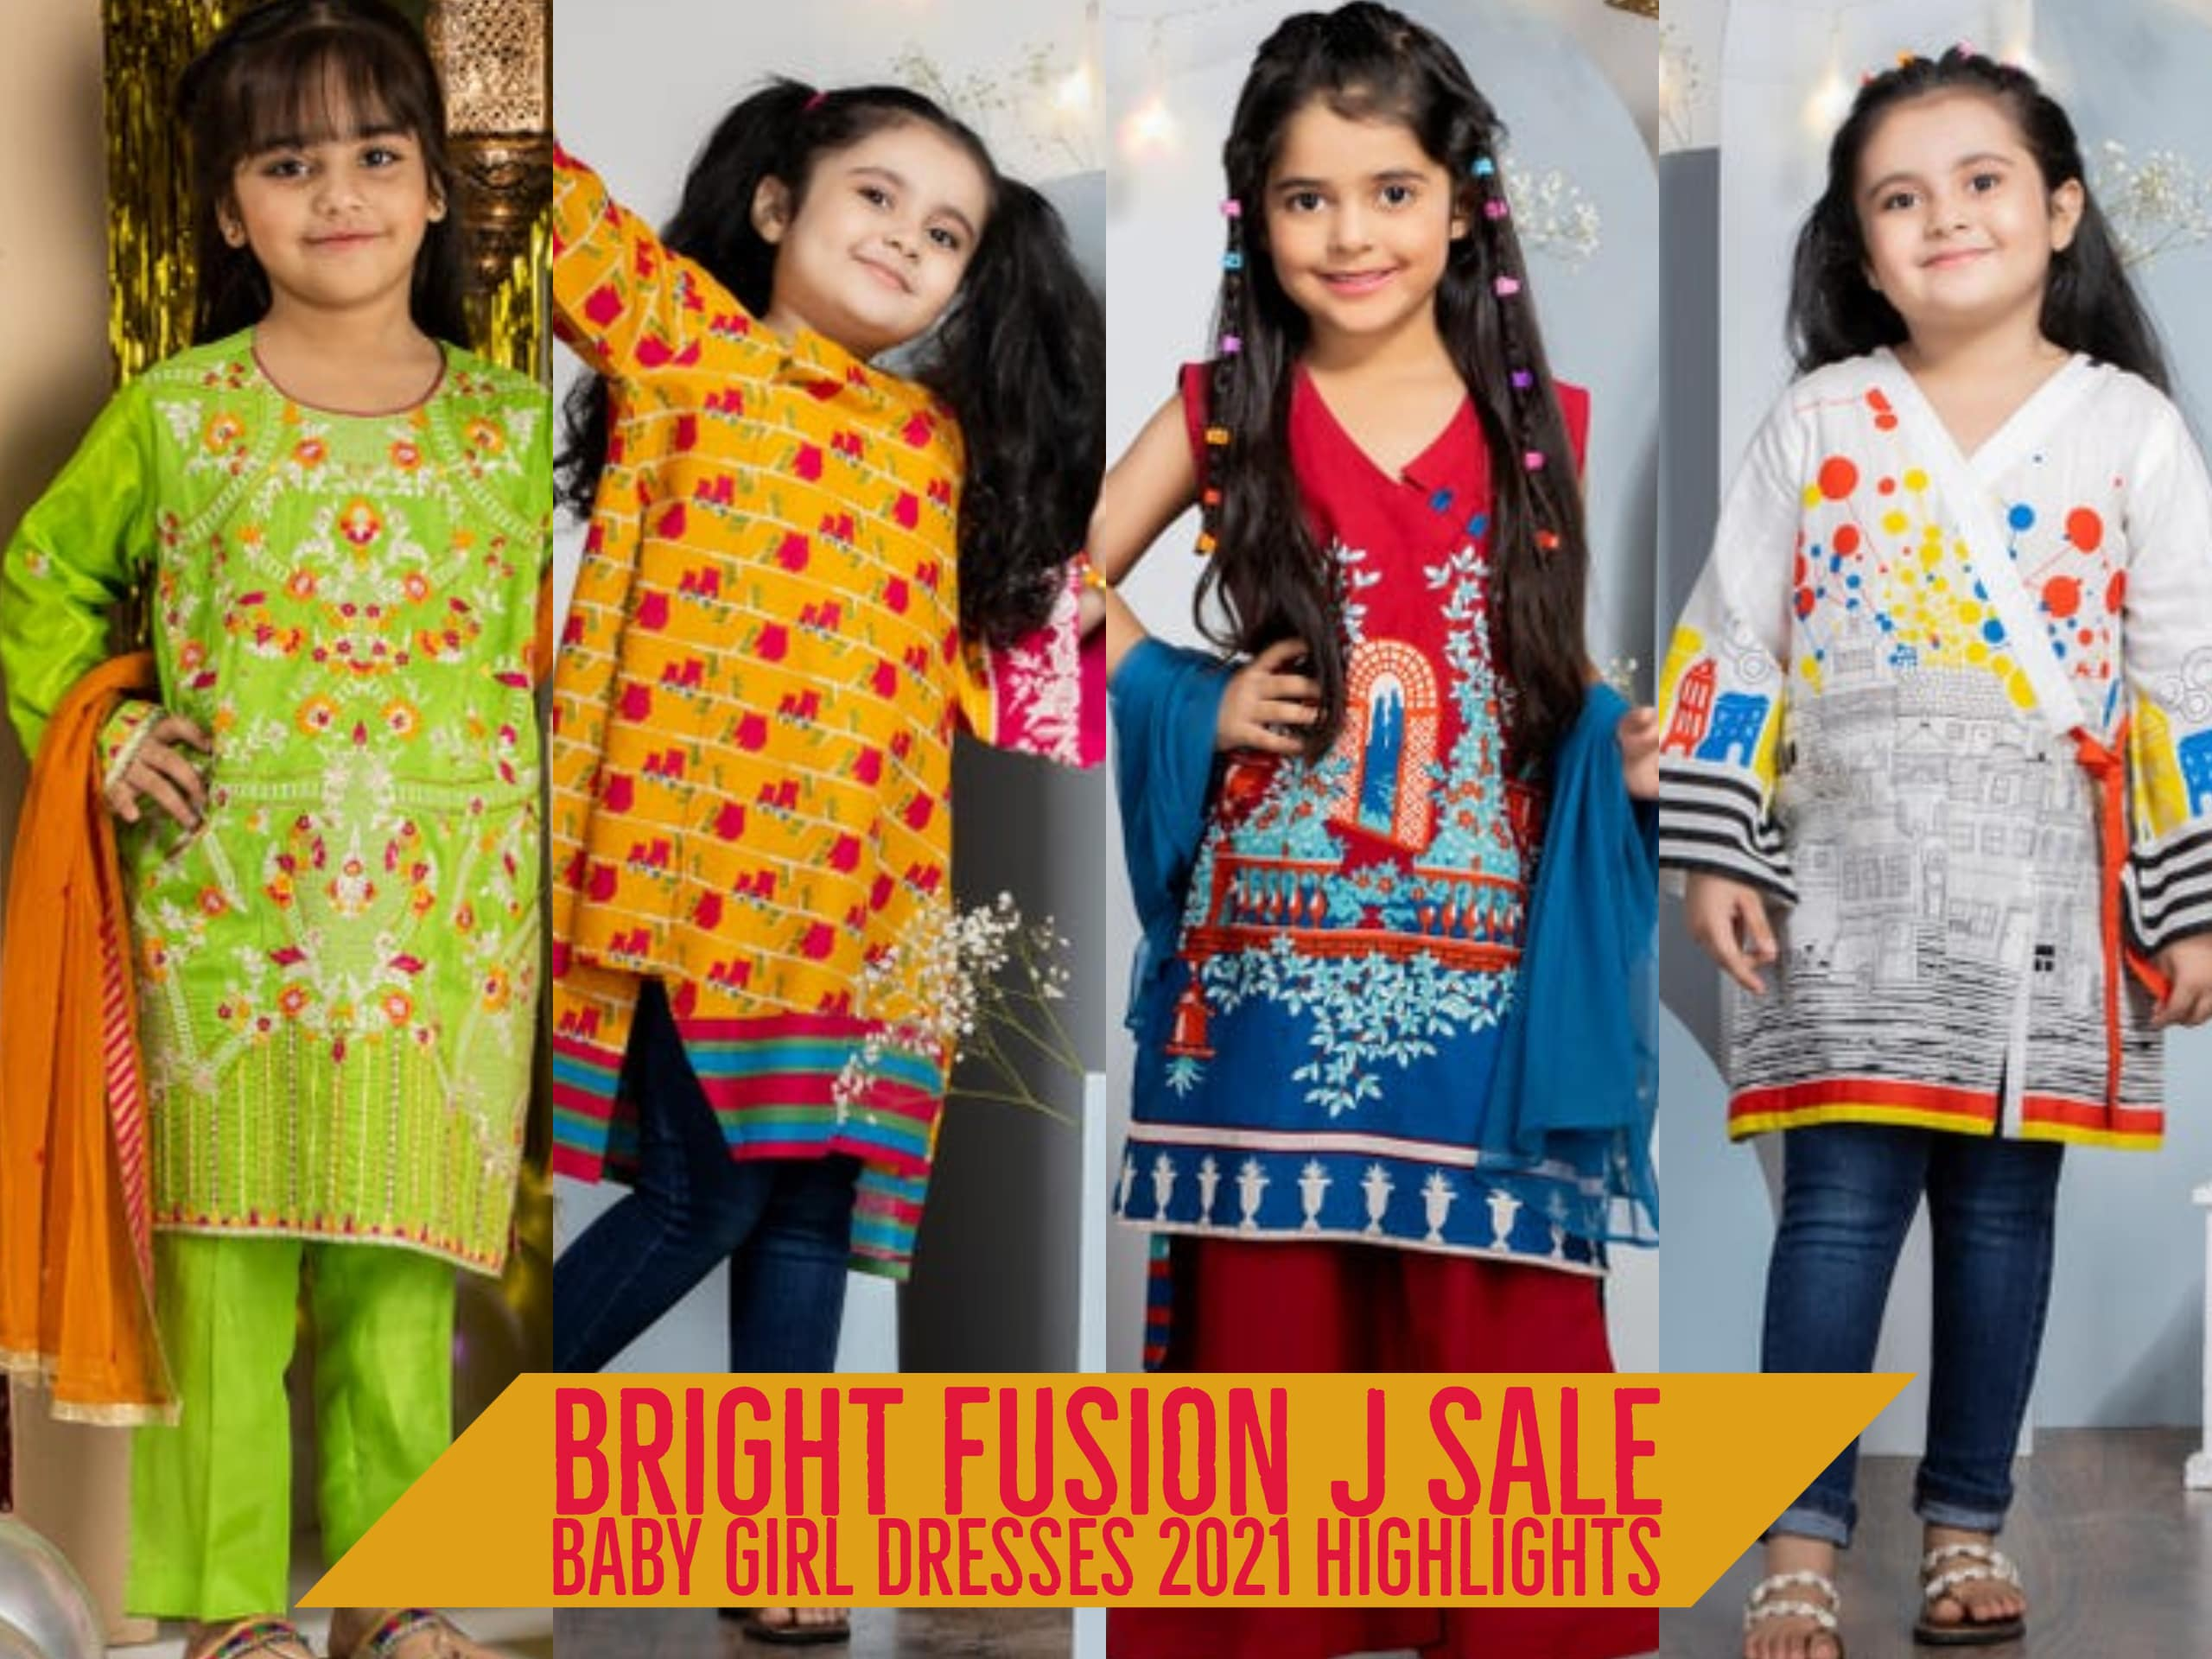 Bright Fusion J Sale Baby Girl Dresses 2021 Highlights